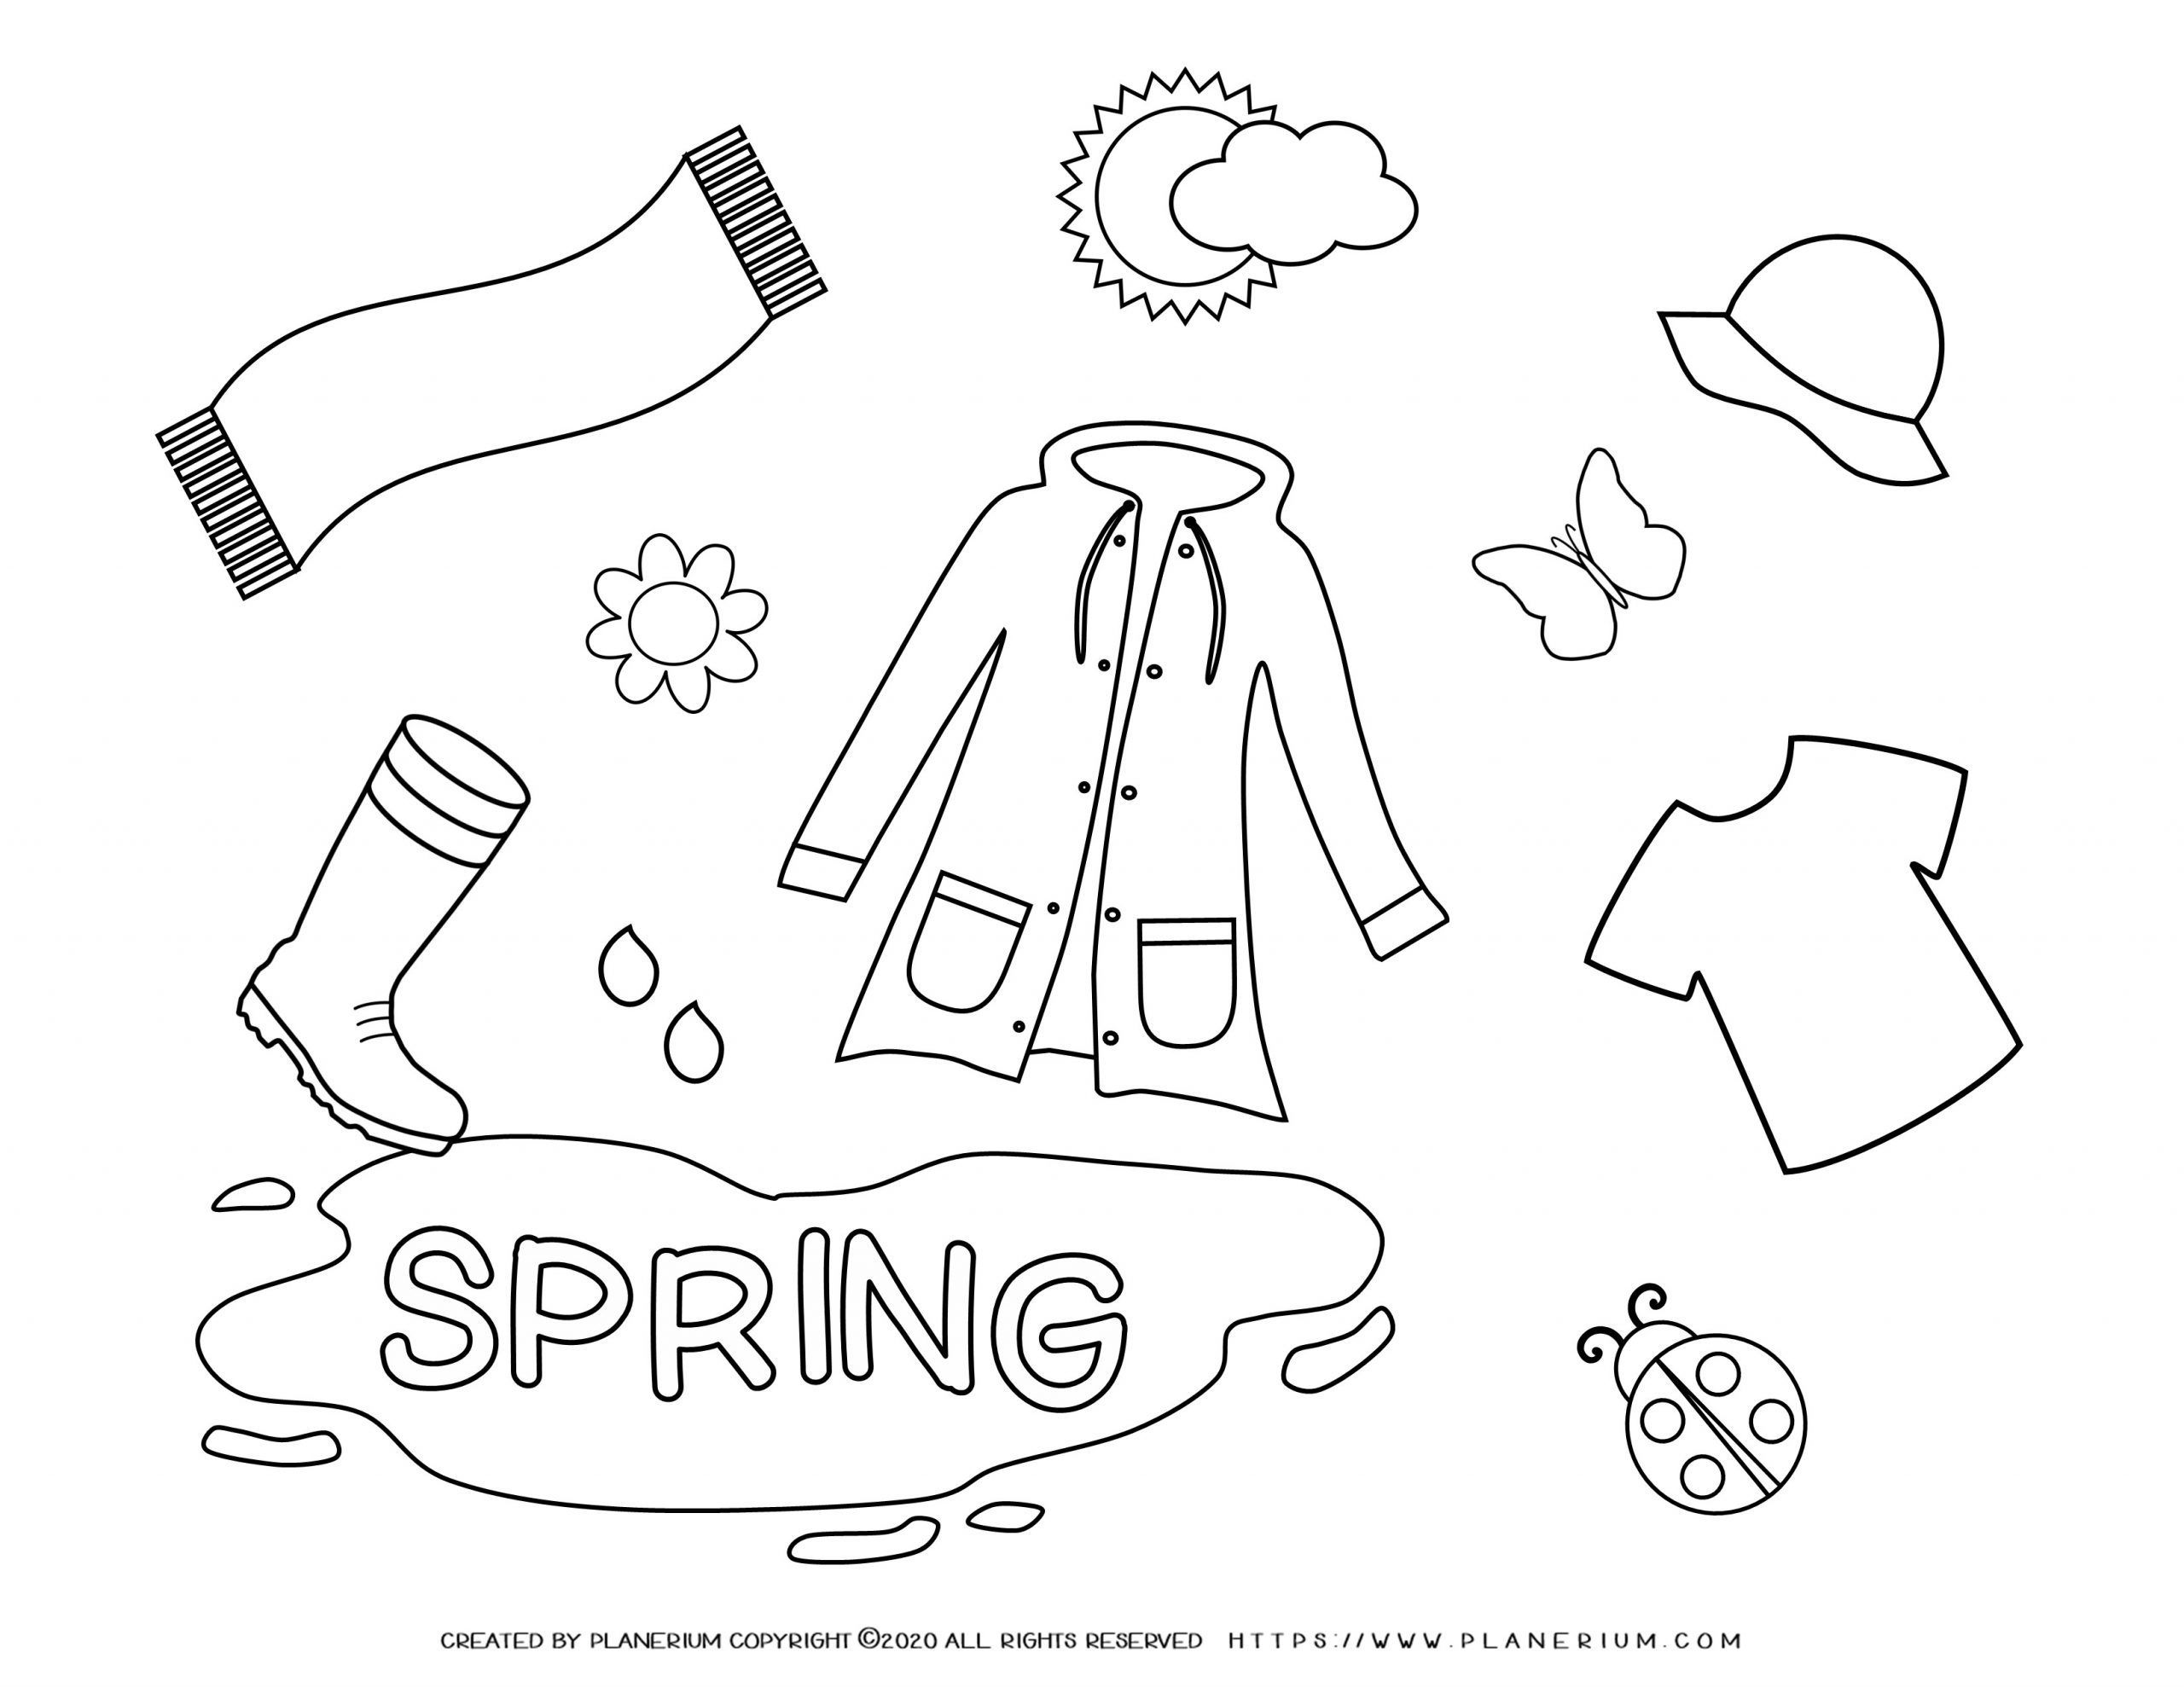 Spring Coloring Page Spring Season Clothes Planerium In 2021 Spring Coloring Pages Coloring Pages Free Coloring Pages